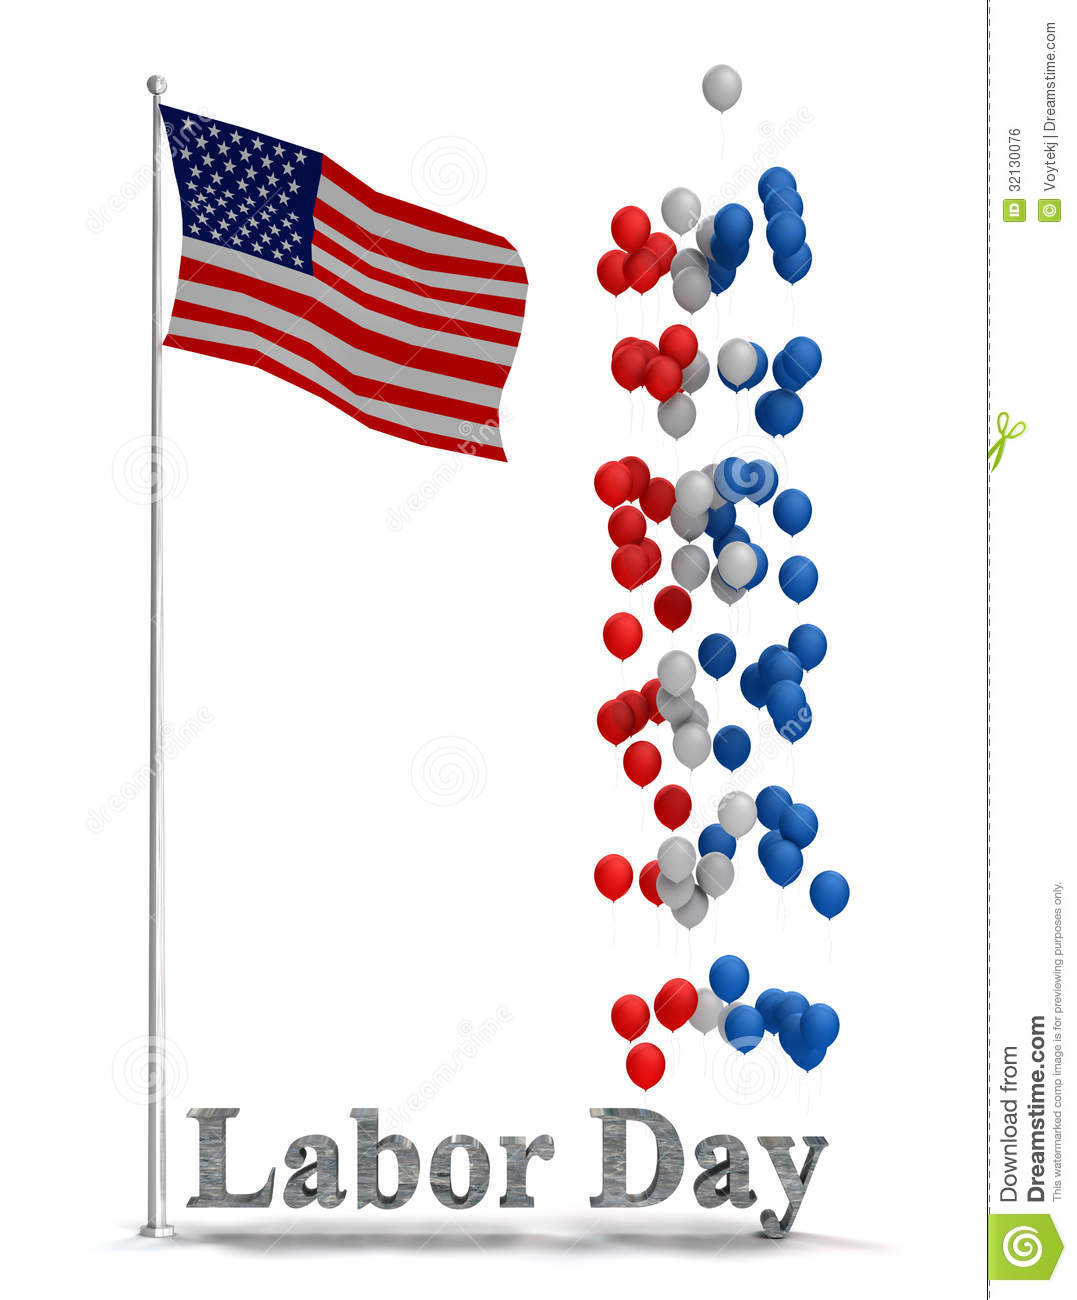 labor day picture day clipart clipart kid. free labor day.